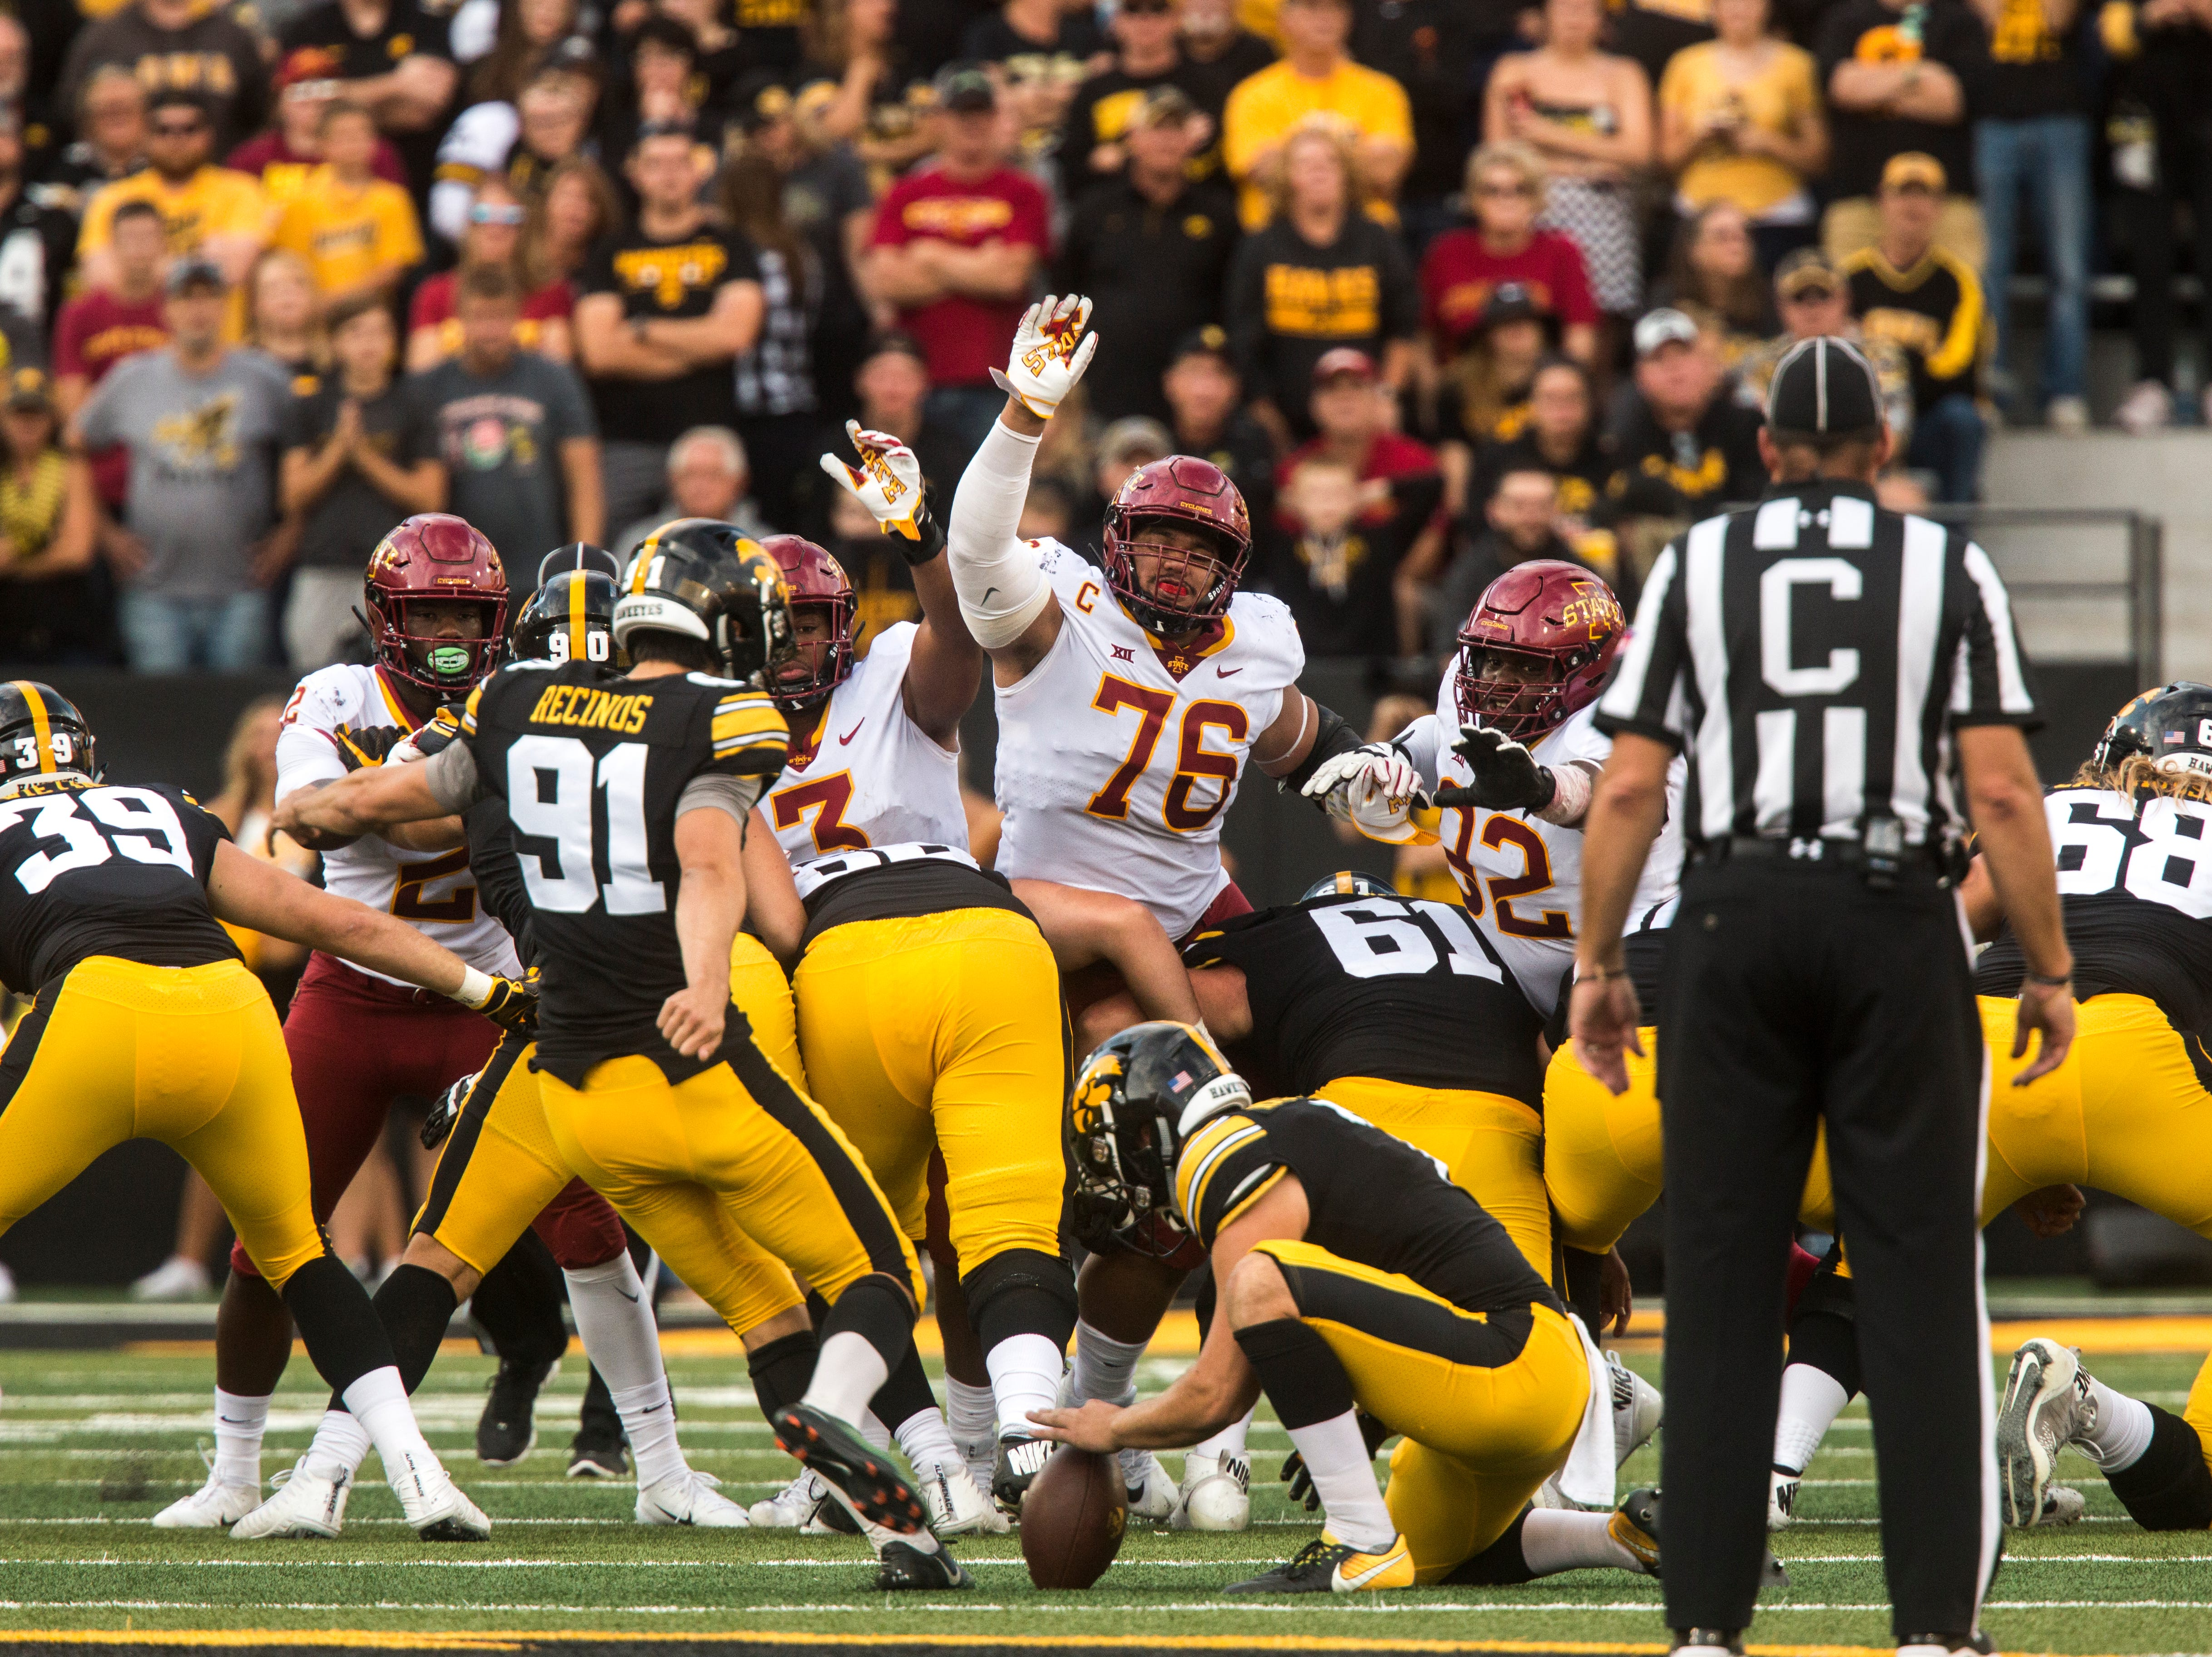 Iowa State defensive lineman Ray Lima (76) attempts to block a field goal from Iowa placekicker Miguel Recinos (91) during the Cy-Hawk NCAA football game on Saturday, Sept. 8, 2018, at Kinnick Stadium in Iowa City.